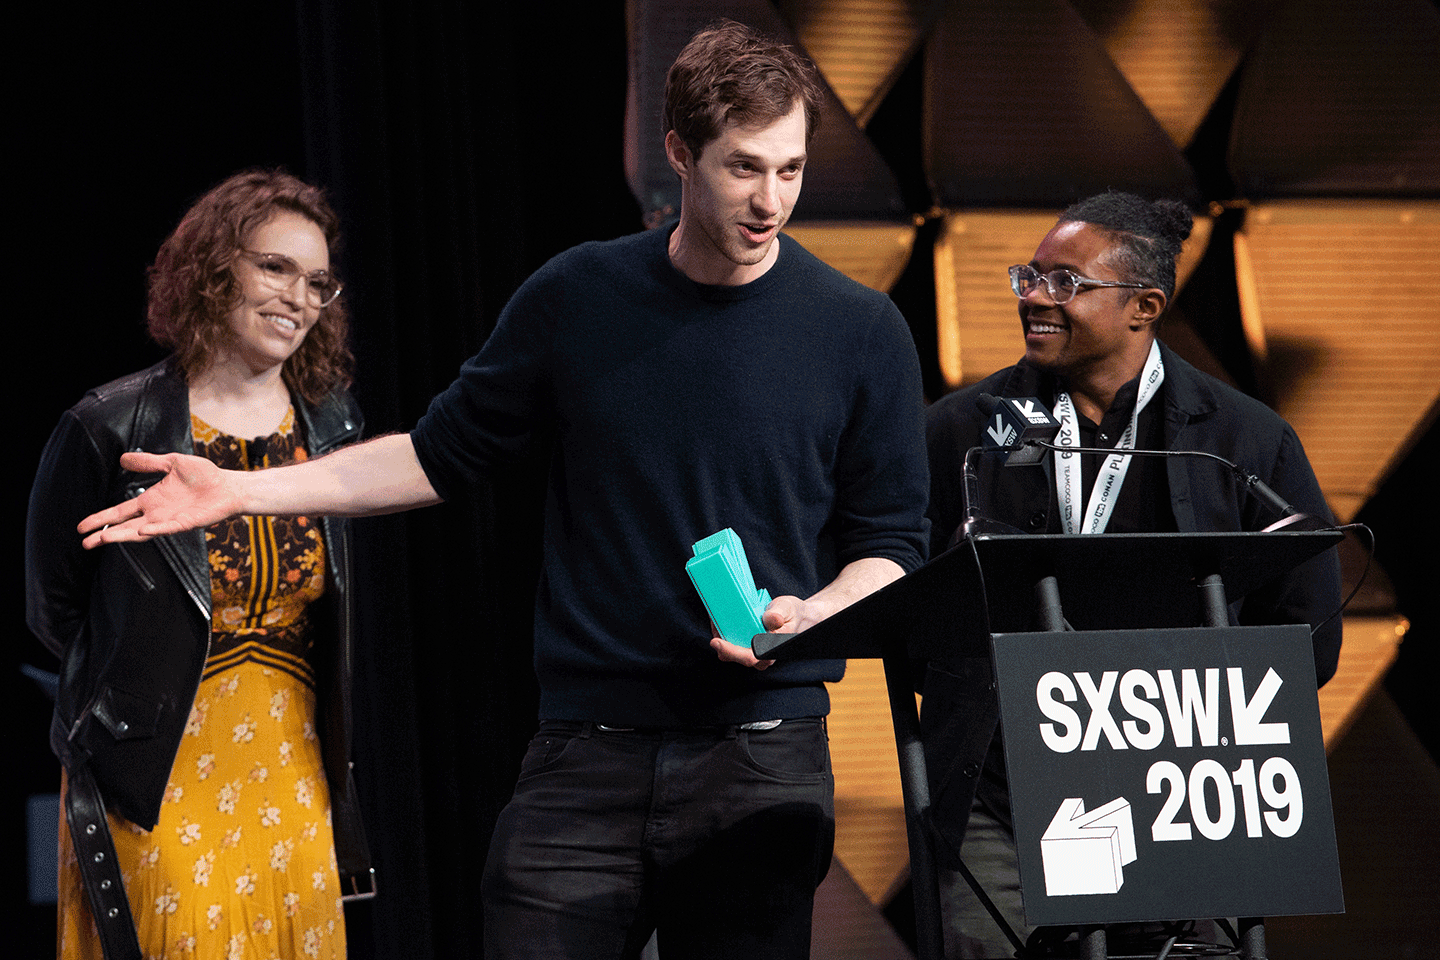 2019 Interactive Innovation Awards Winners - Photo by Miguel Esparza